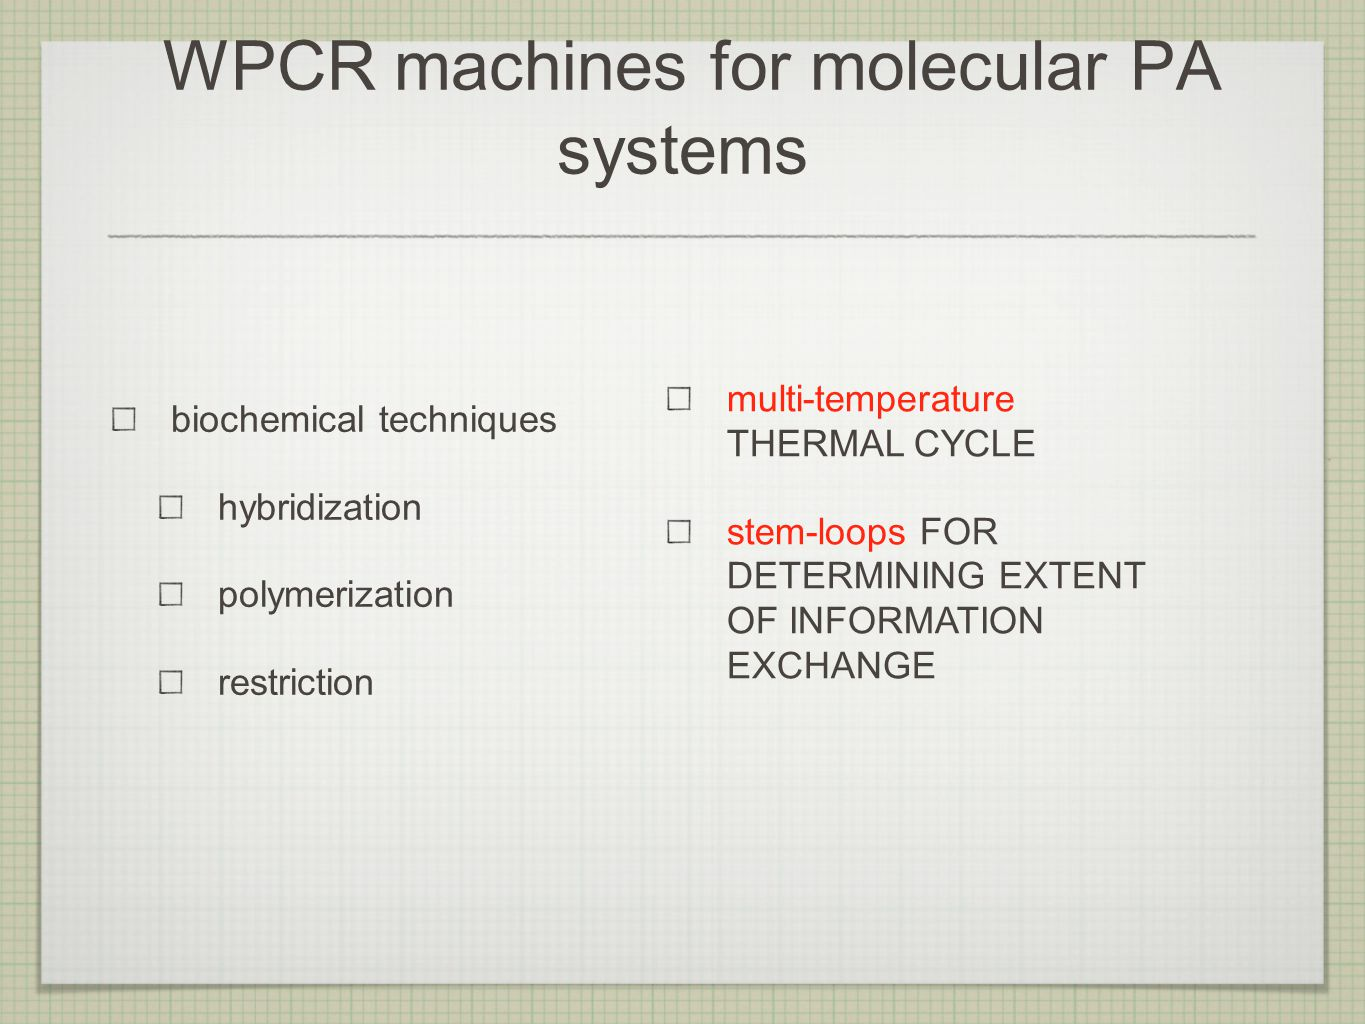 WPCR machines for molecular PA systems biochemical techniques hybridization polymerization restriction multi-temperature THERMAL CYCLE stem-loops FOR DETERMINING EXTENT OF INFORMATION EXCHANGE